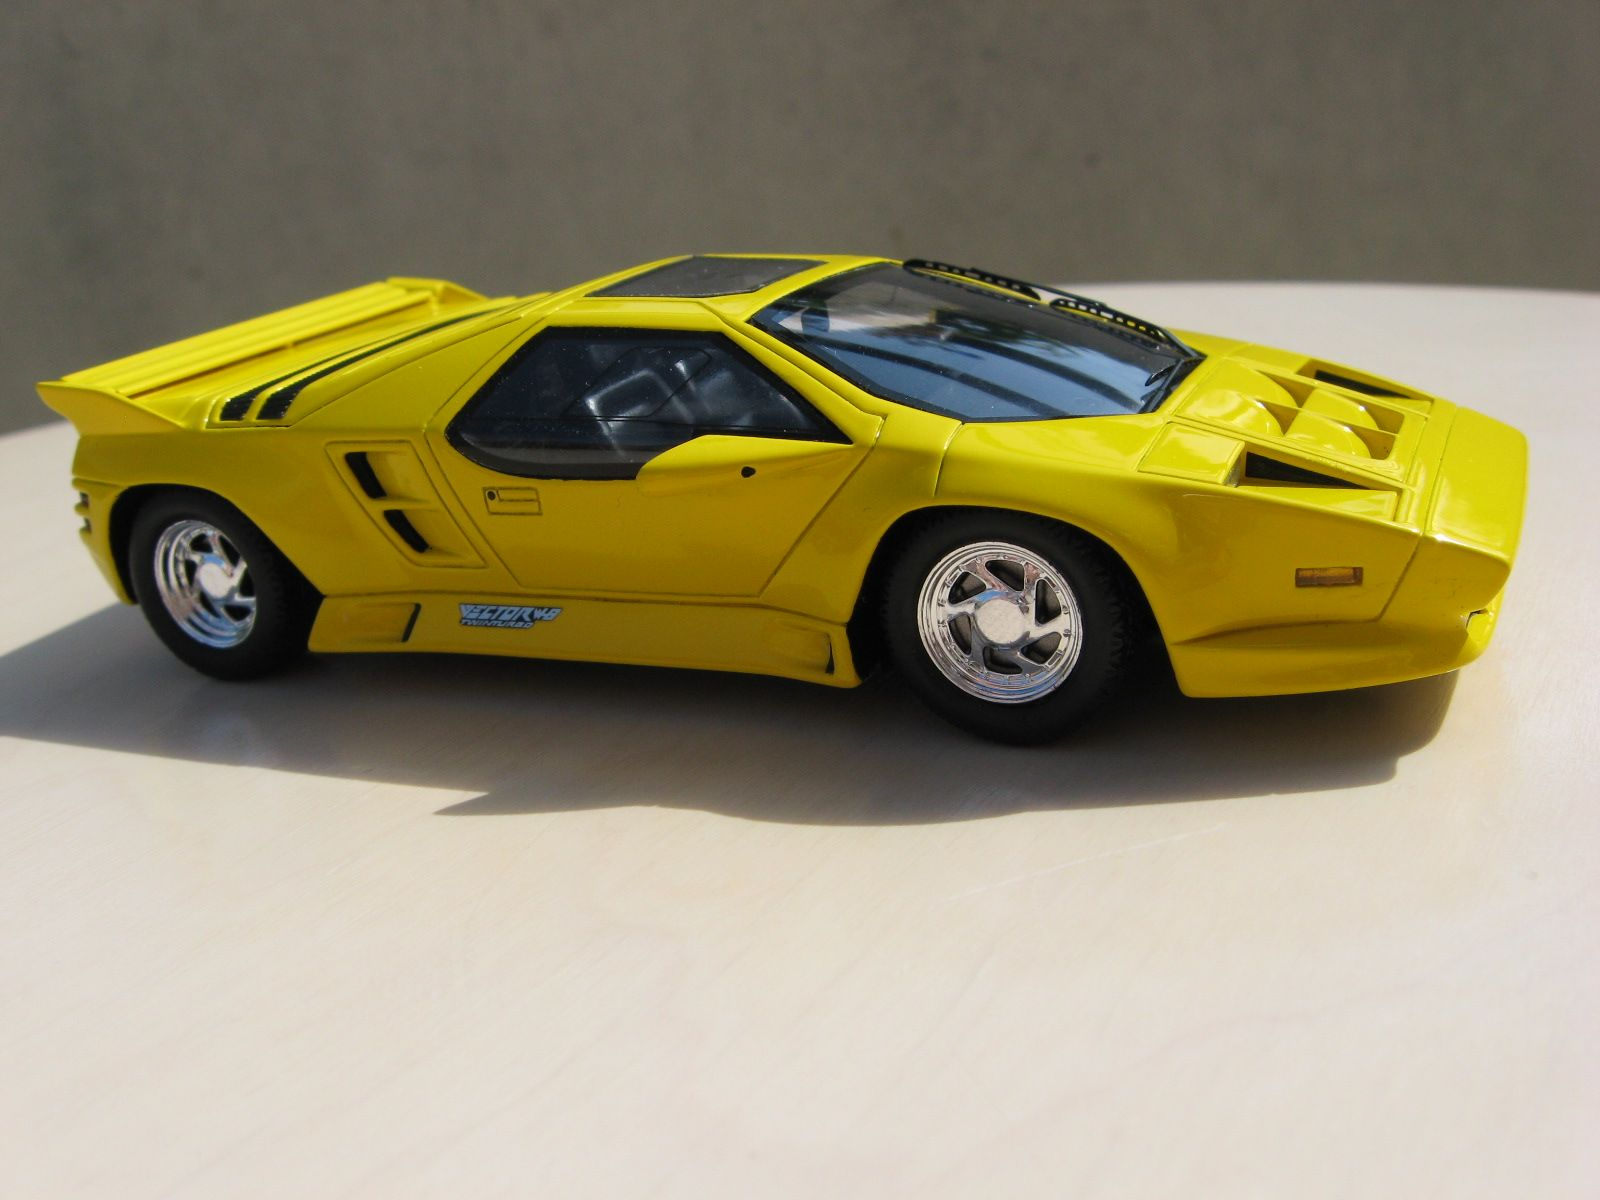 Vector W8 Spark 1 43 Scale Models Cars Car Model Toy Car